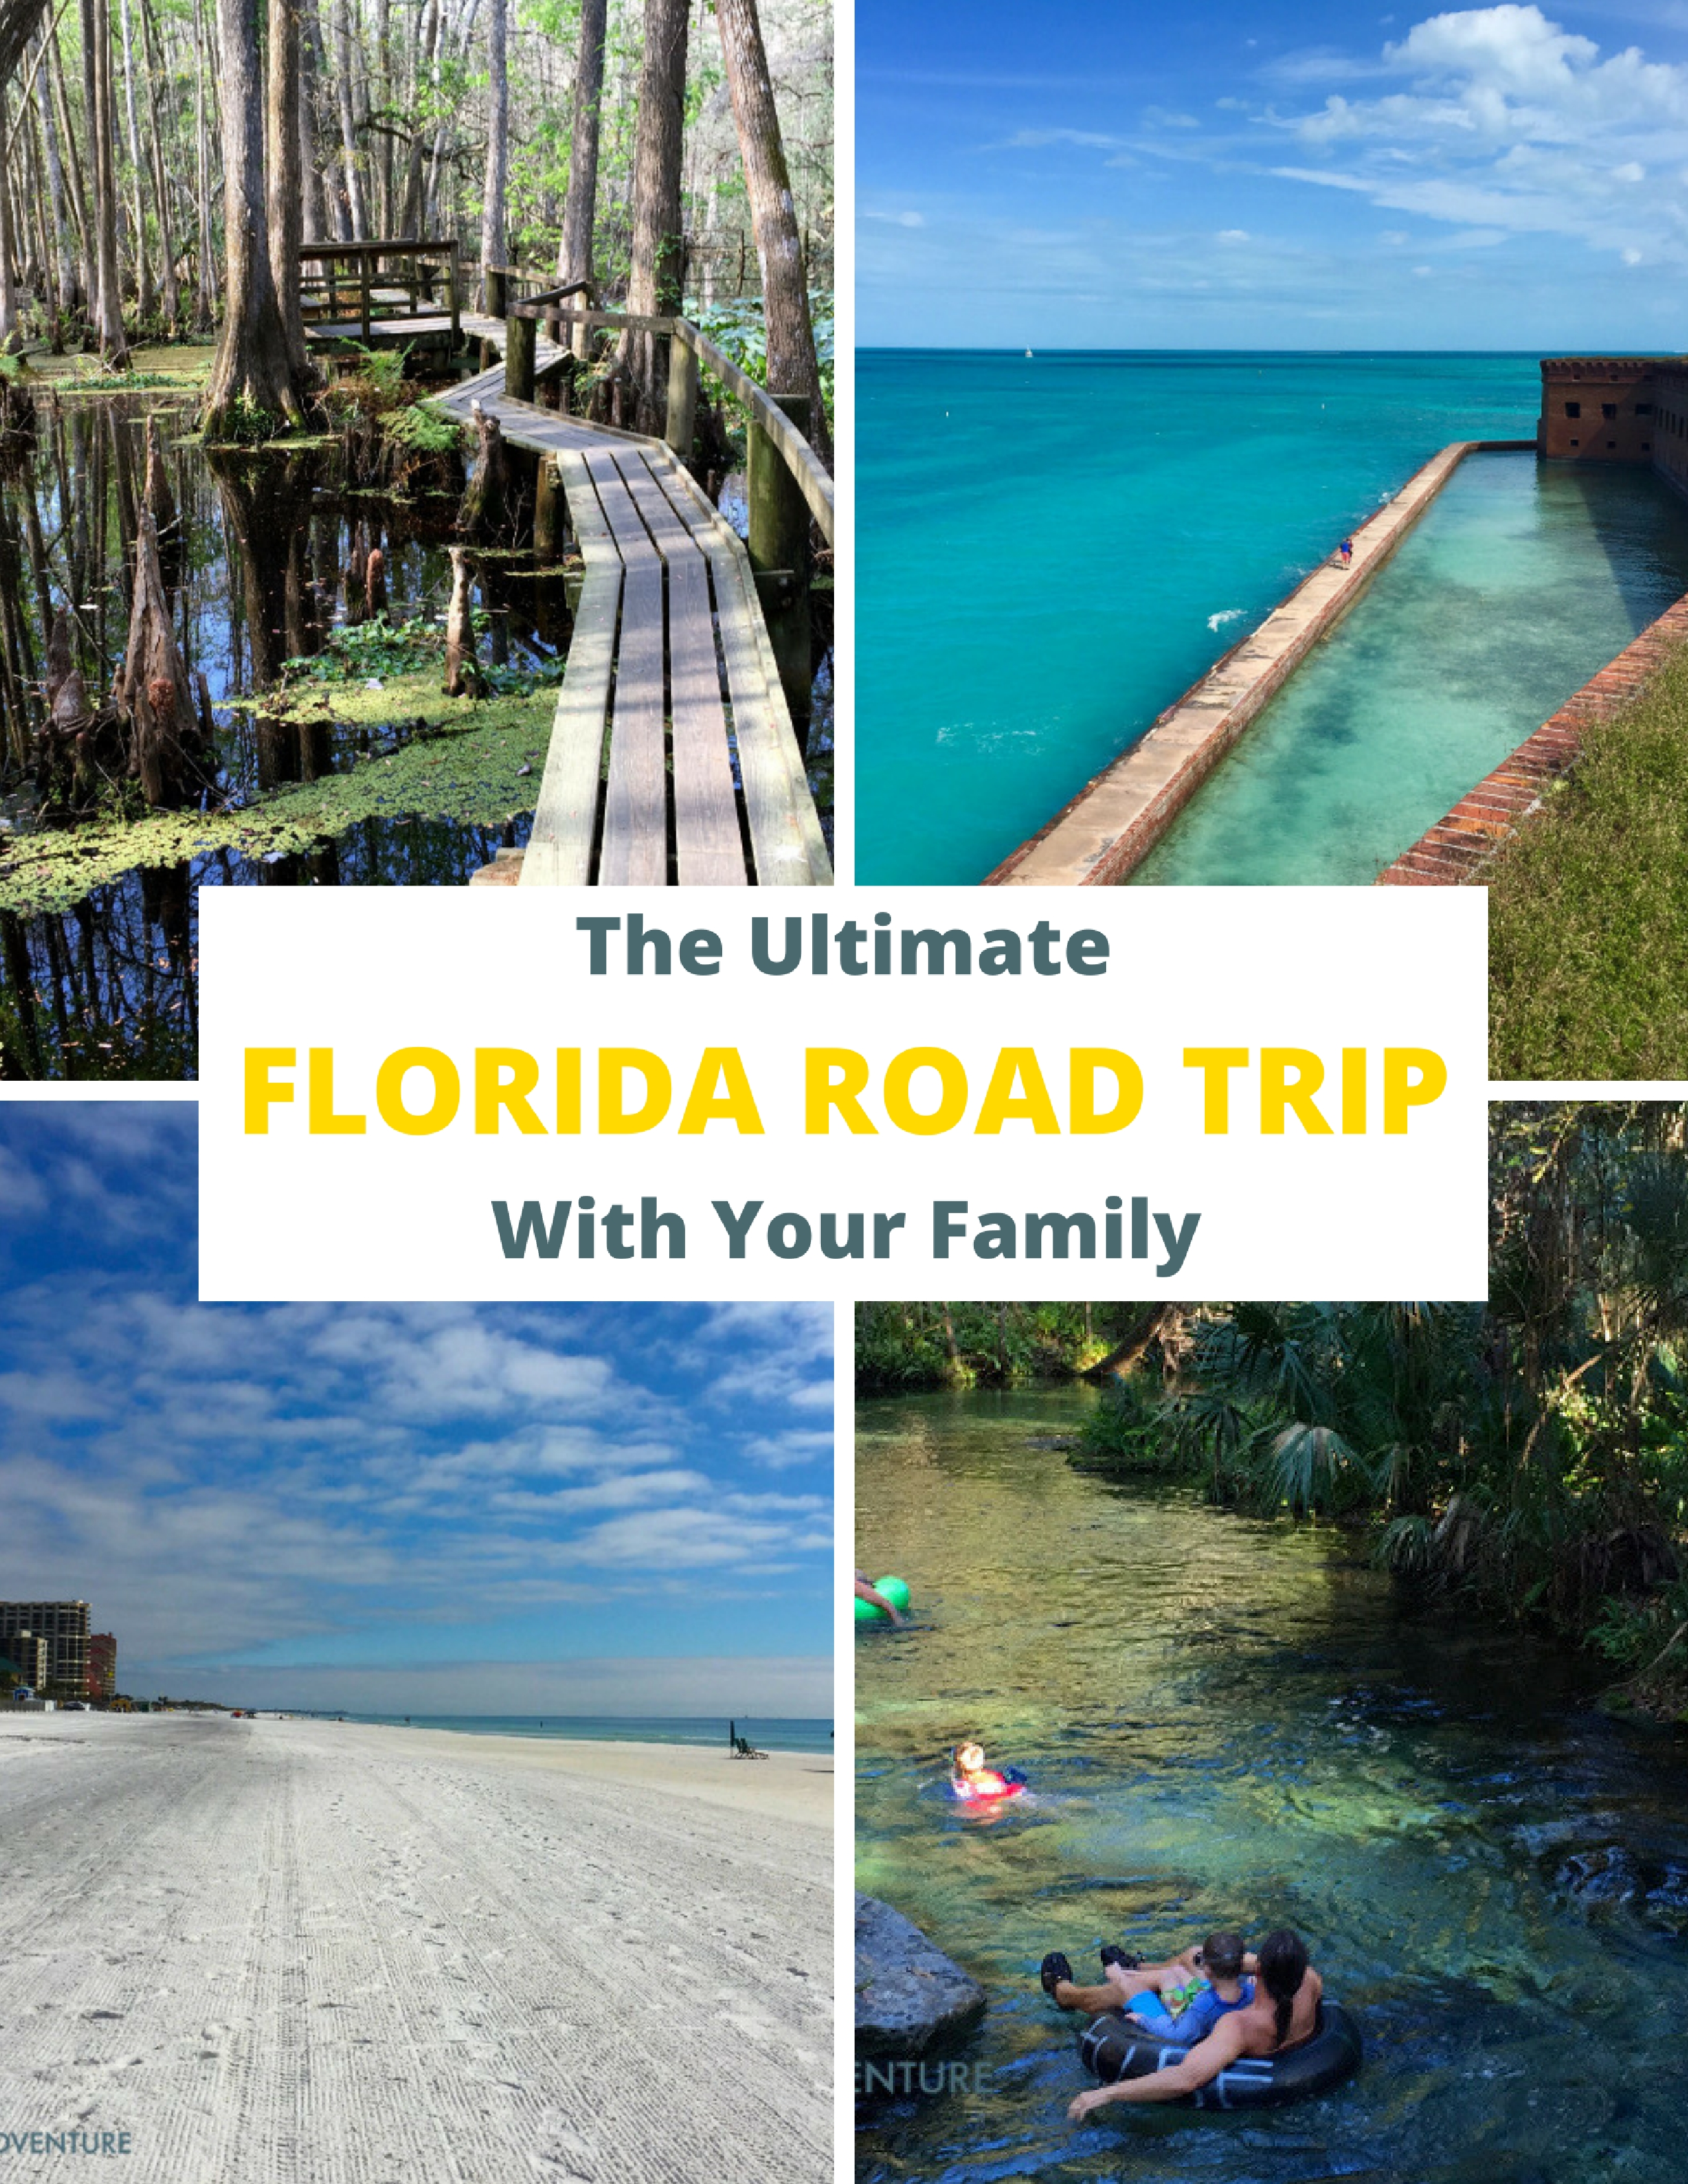 9500 Miramar Rd: Thank You For Downloading Our Ultimate Florida Road Trip